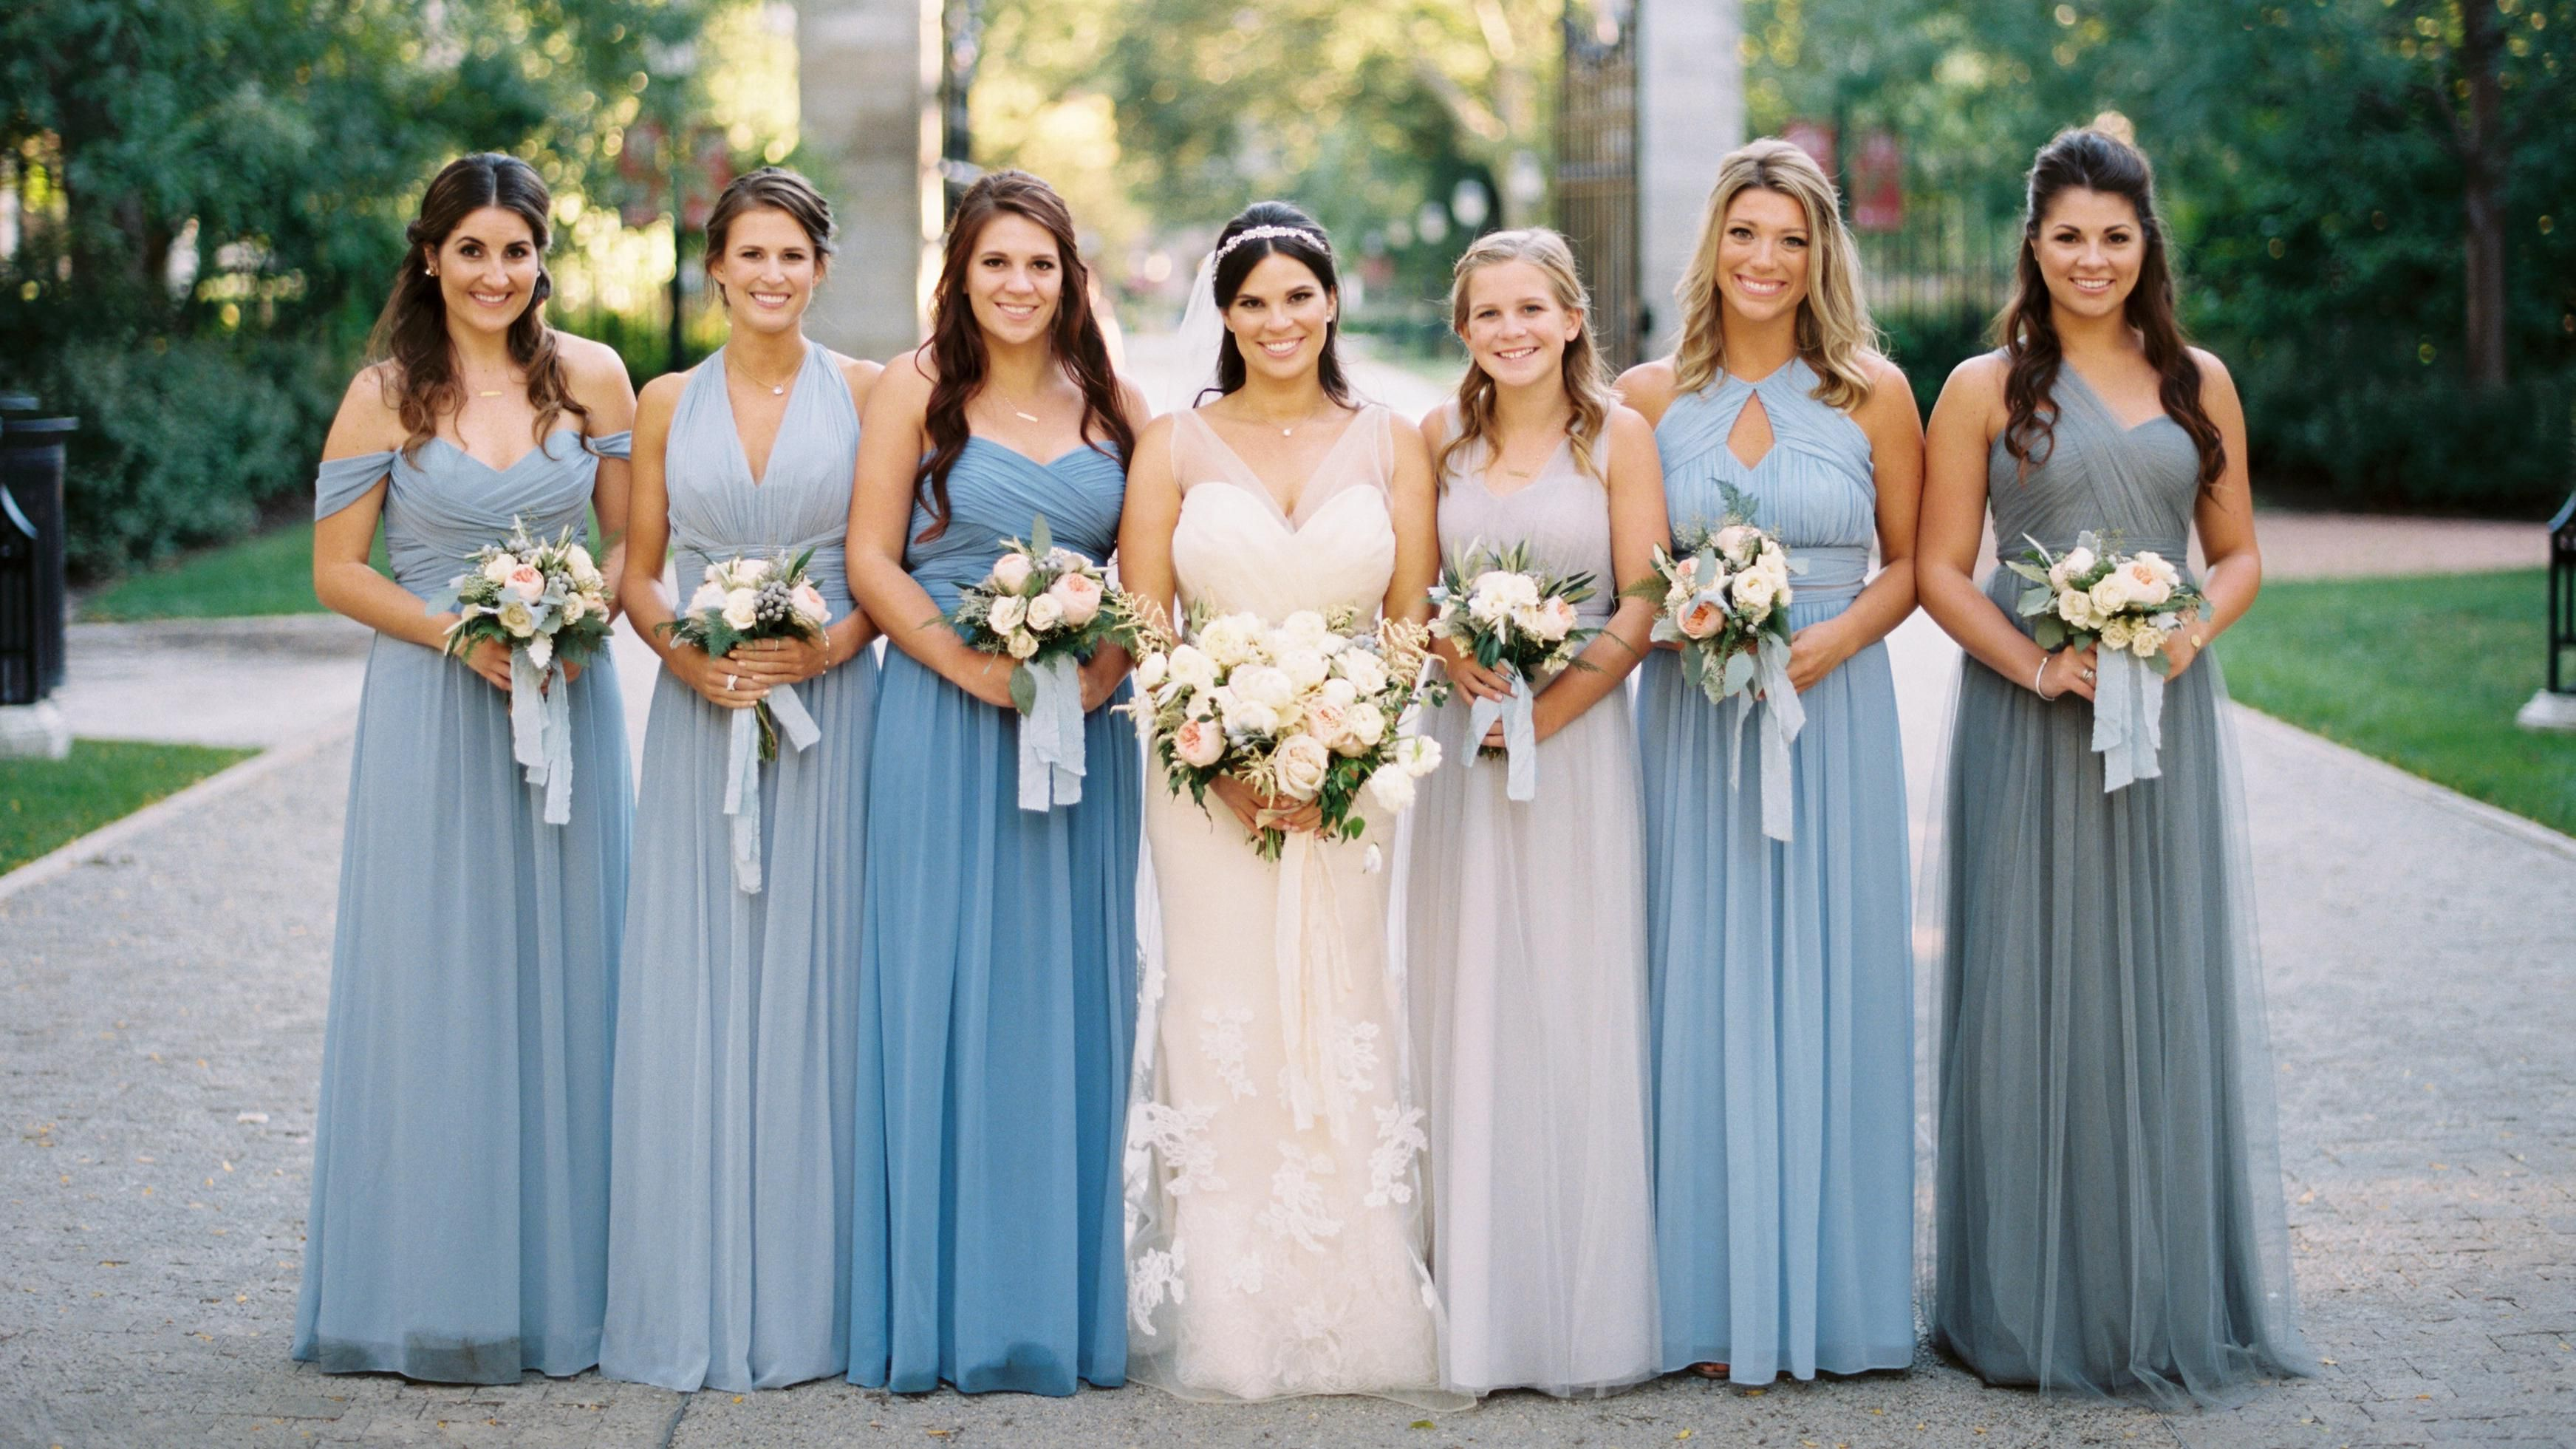 Finding the Ideal Maternity Bridesmaid Dress